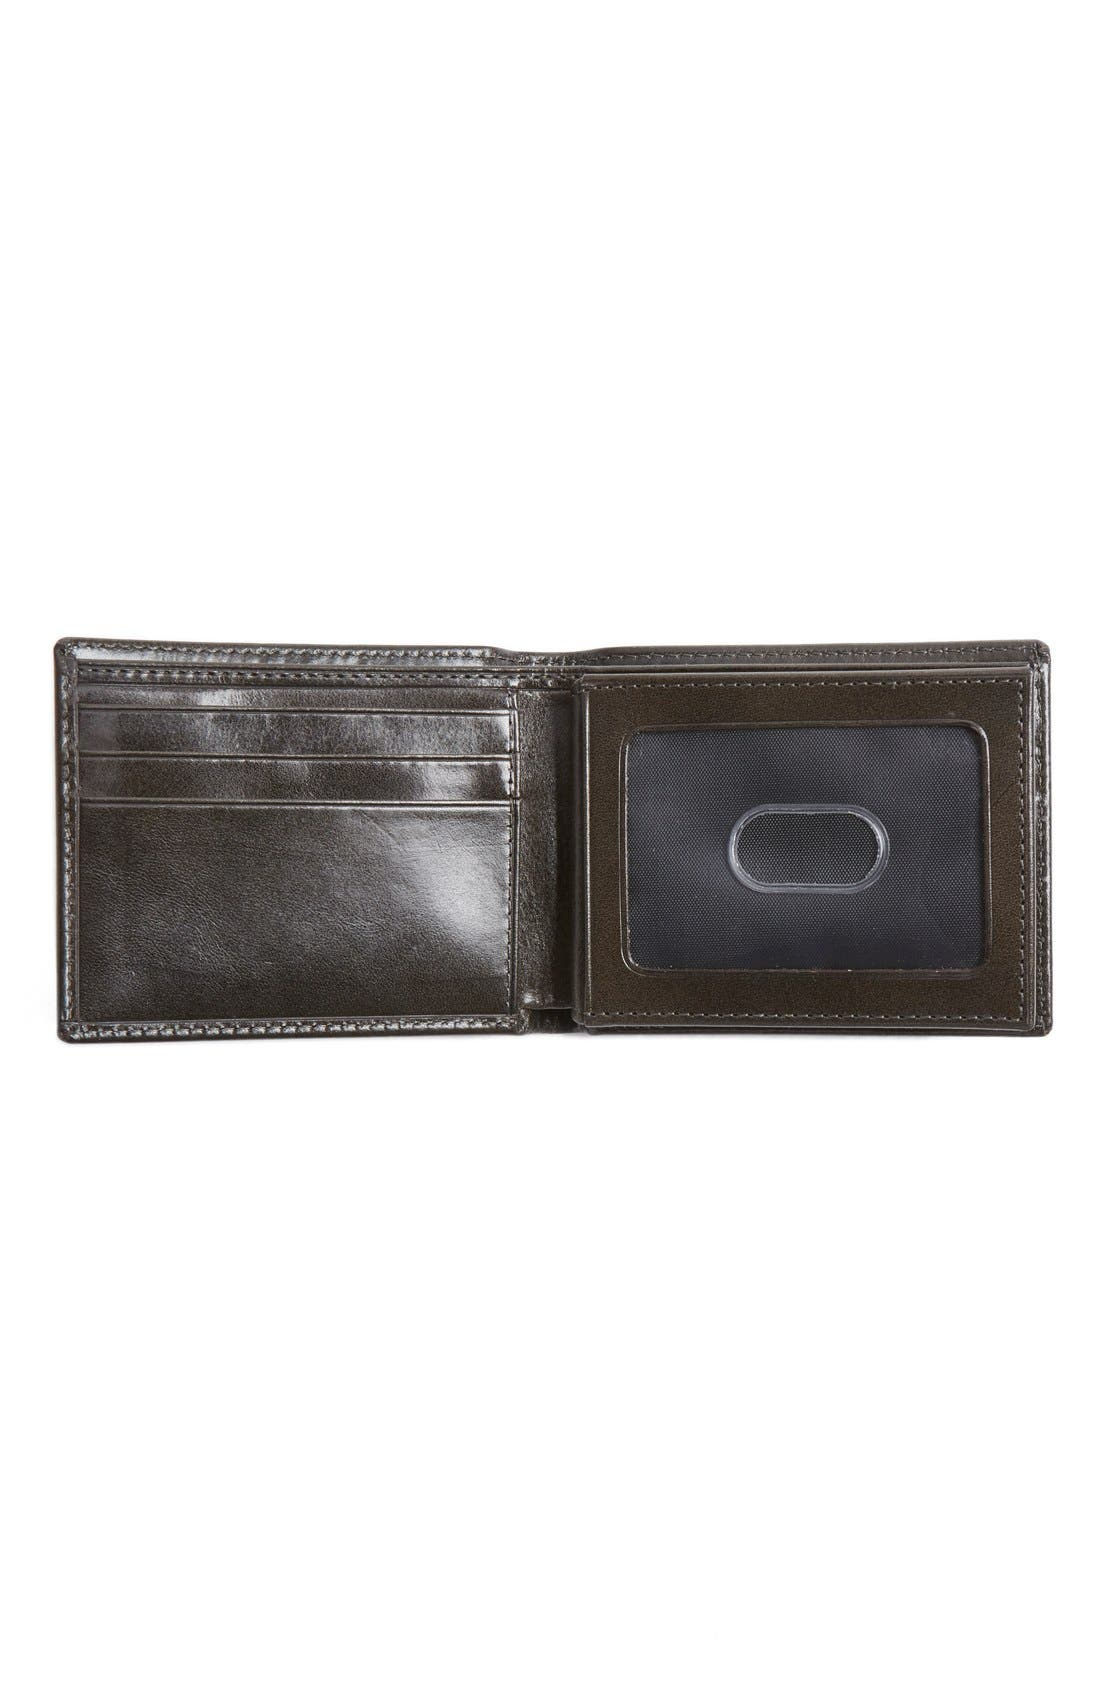 Flip Billfold Leather Wallet,                             Alternate thumbnail 2, color,                             CHARCOAL